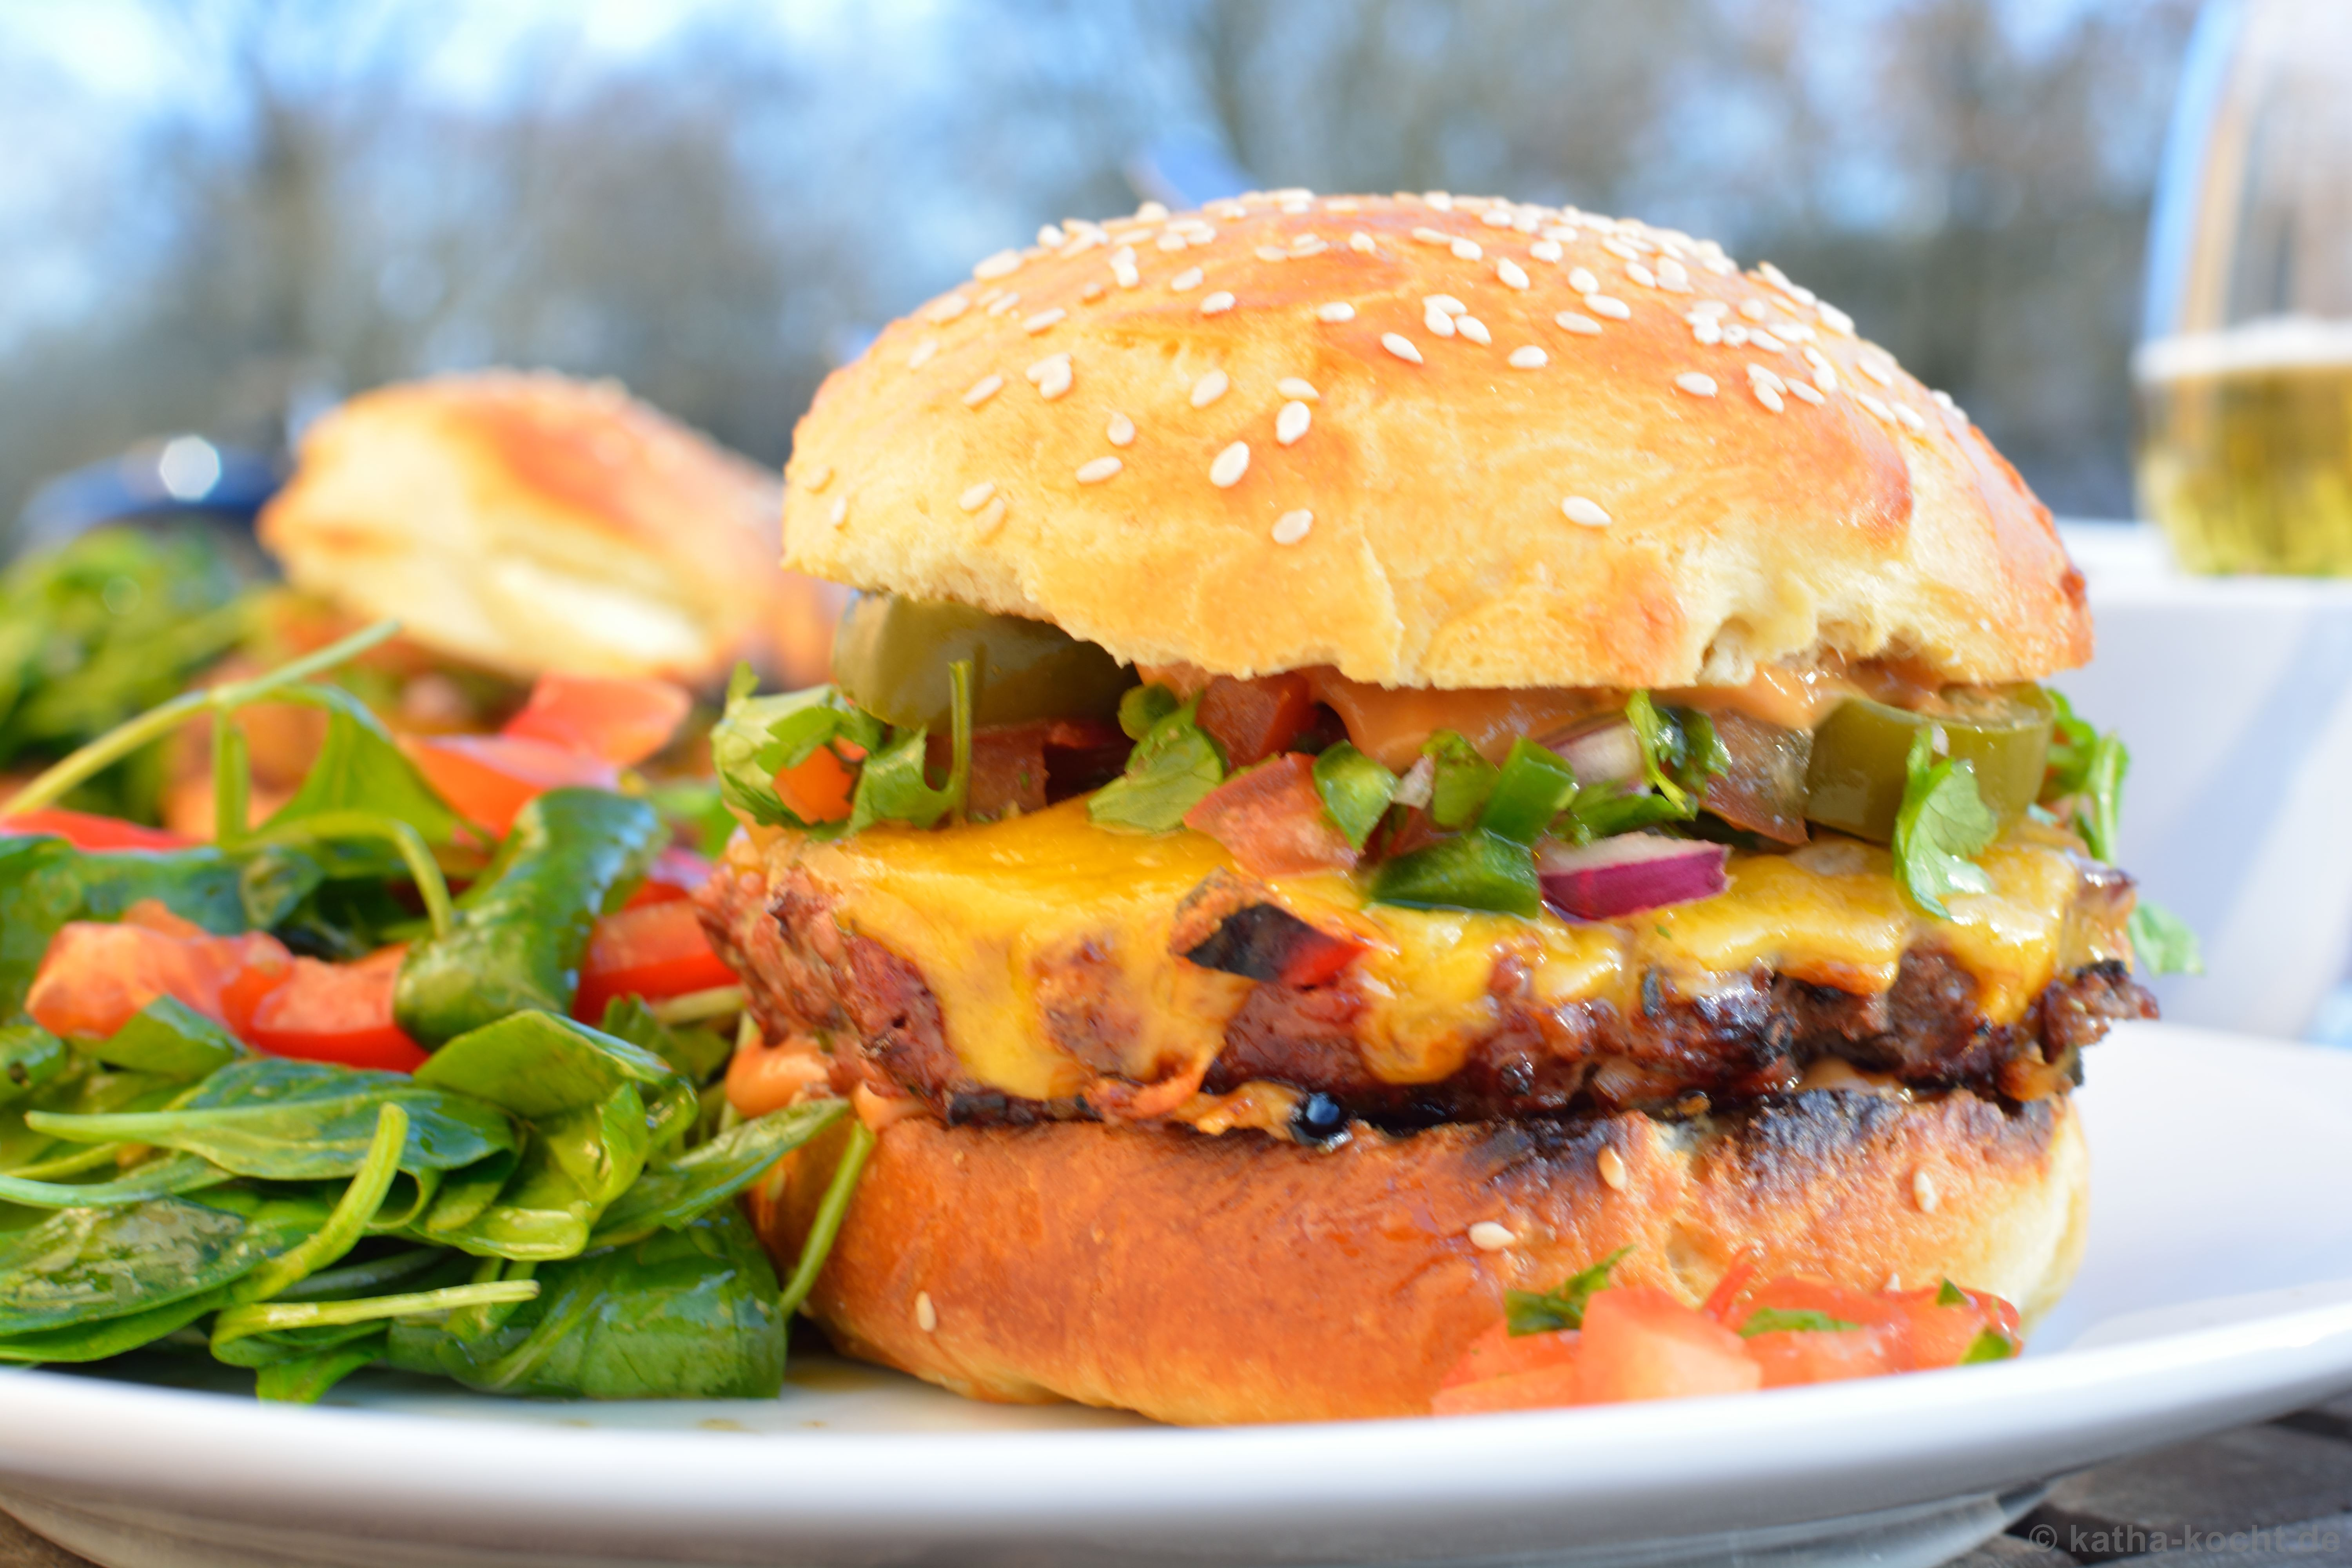 Chili Burgers Recipes — Dishmaps